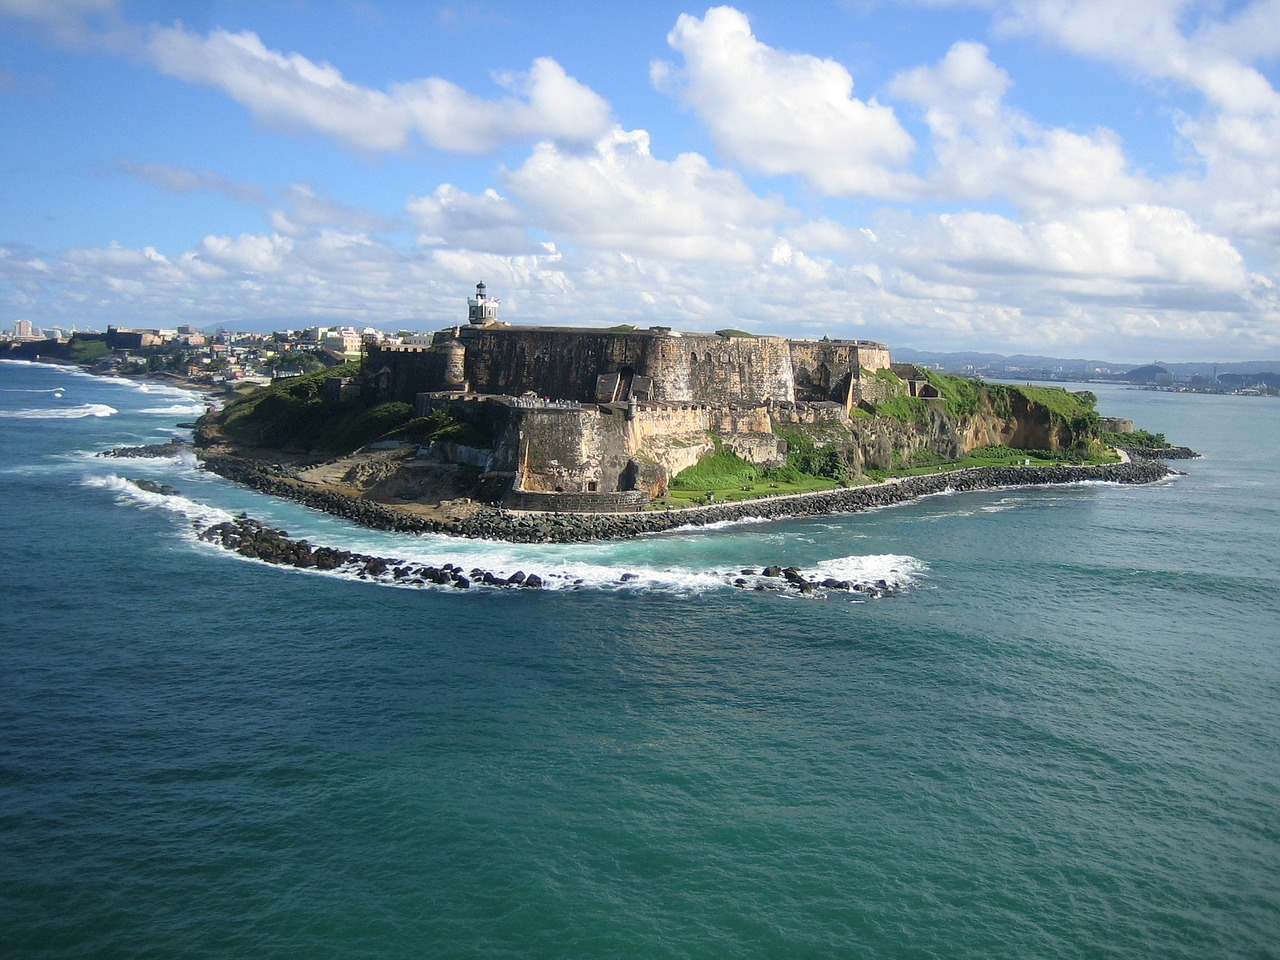 View of Punta Del Morro in Puerto Rico